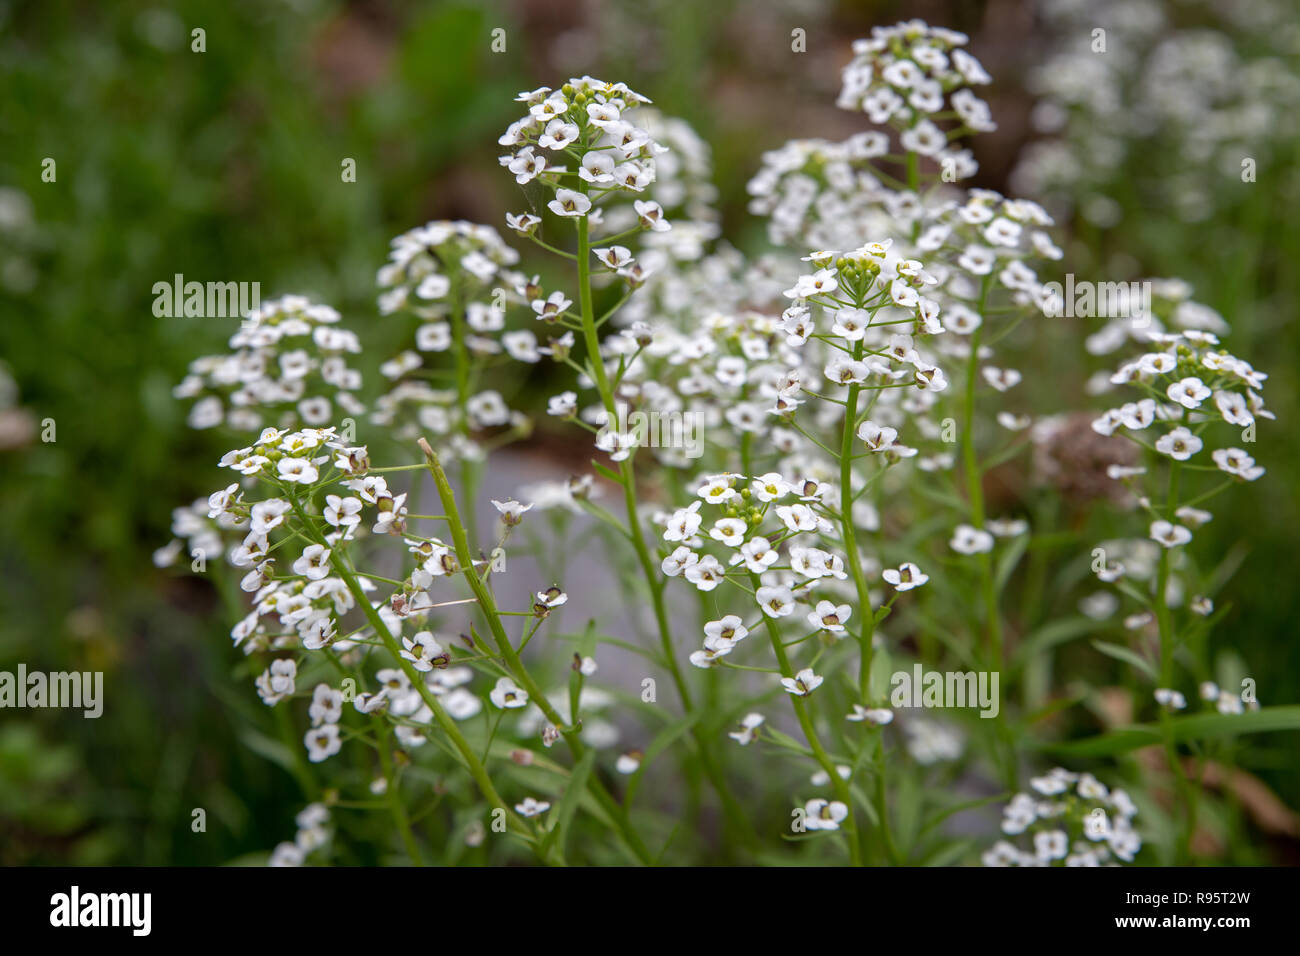 Alyssum grows in an organic garden as a companion plant and is beneficial to insects - Stock Image